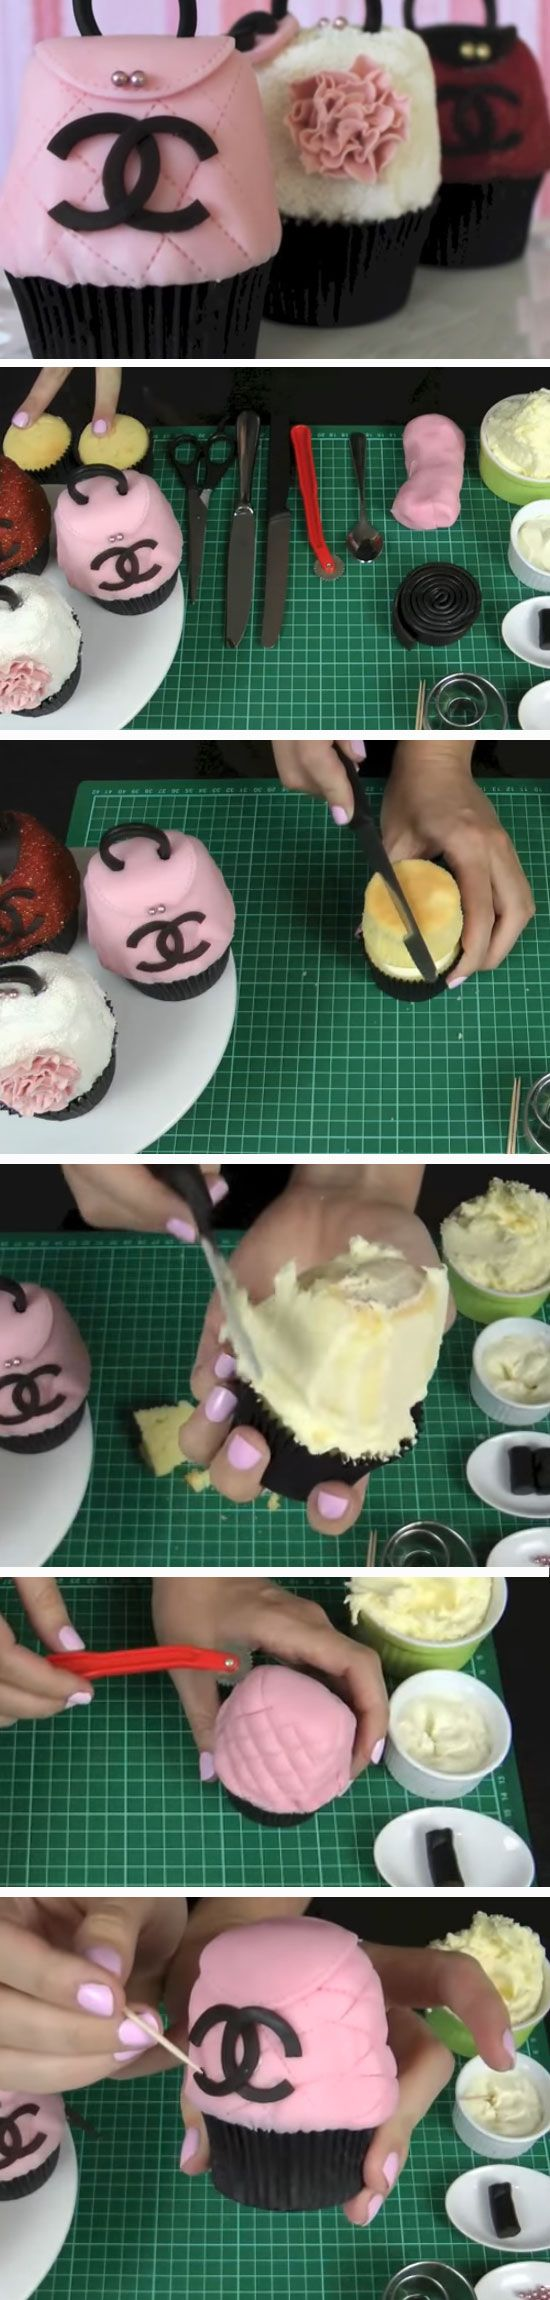 Chanel Purses   DIY Mothers Day Cupcakes Ideas for Kids to Make   Easy Valentines Treats for Friends